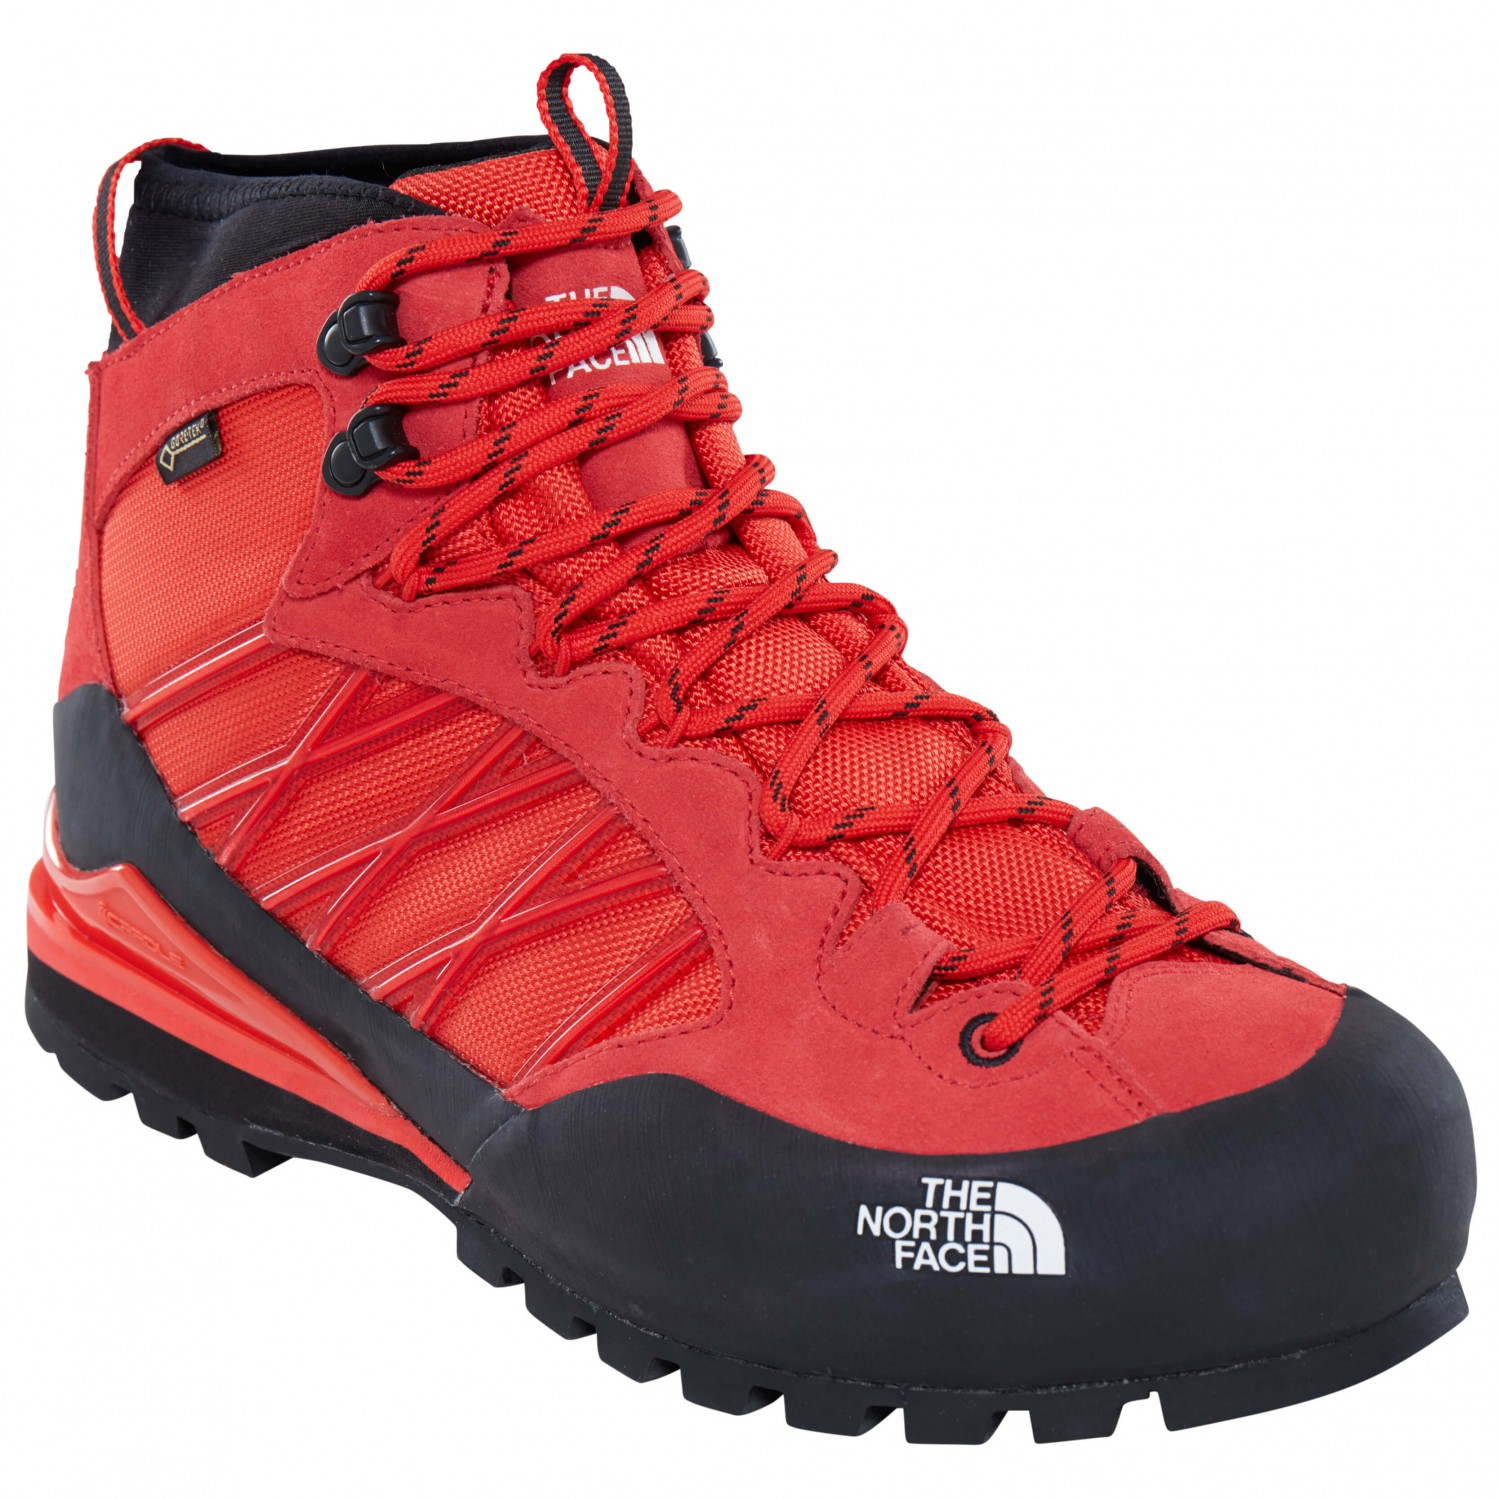 581baf1279 Homme II Face GTX North S3K Chaussures The Verto d'alpinisme Ig8447